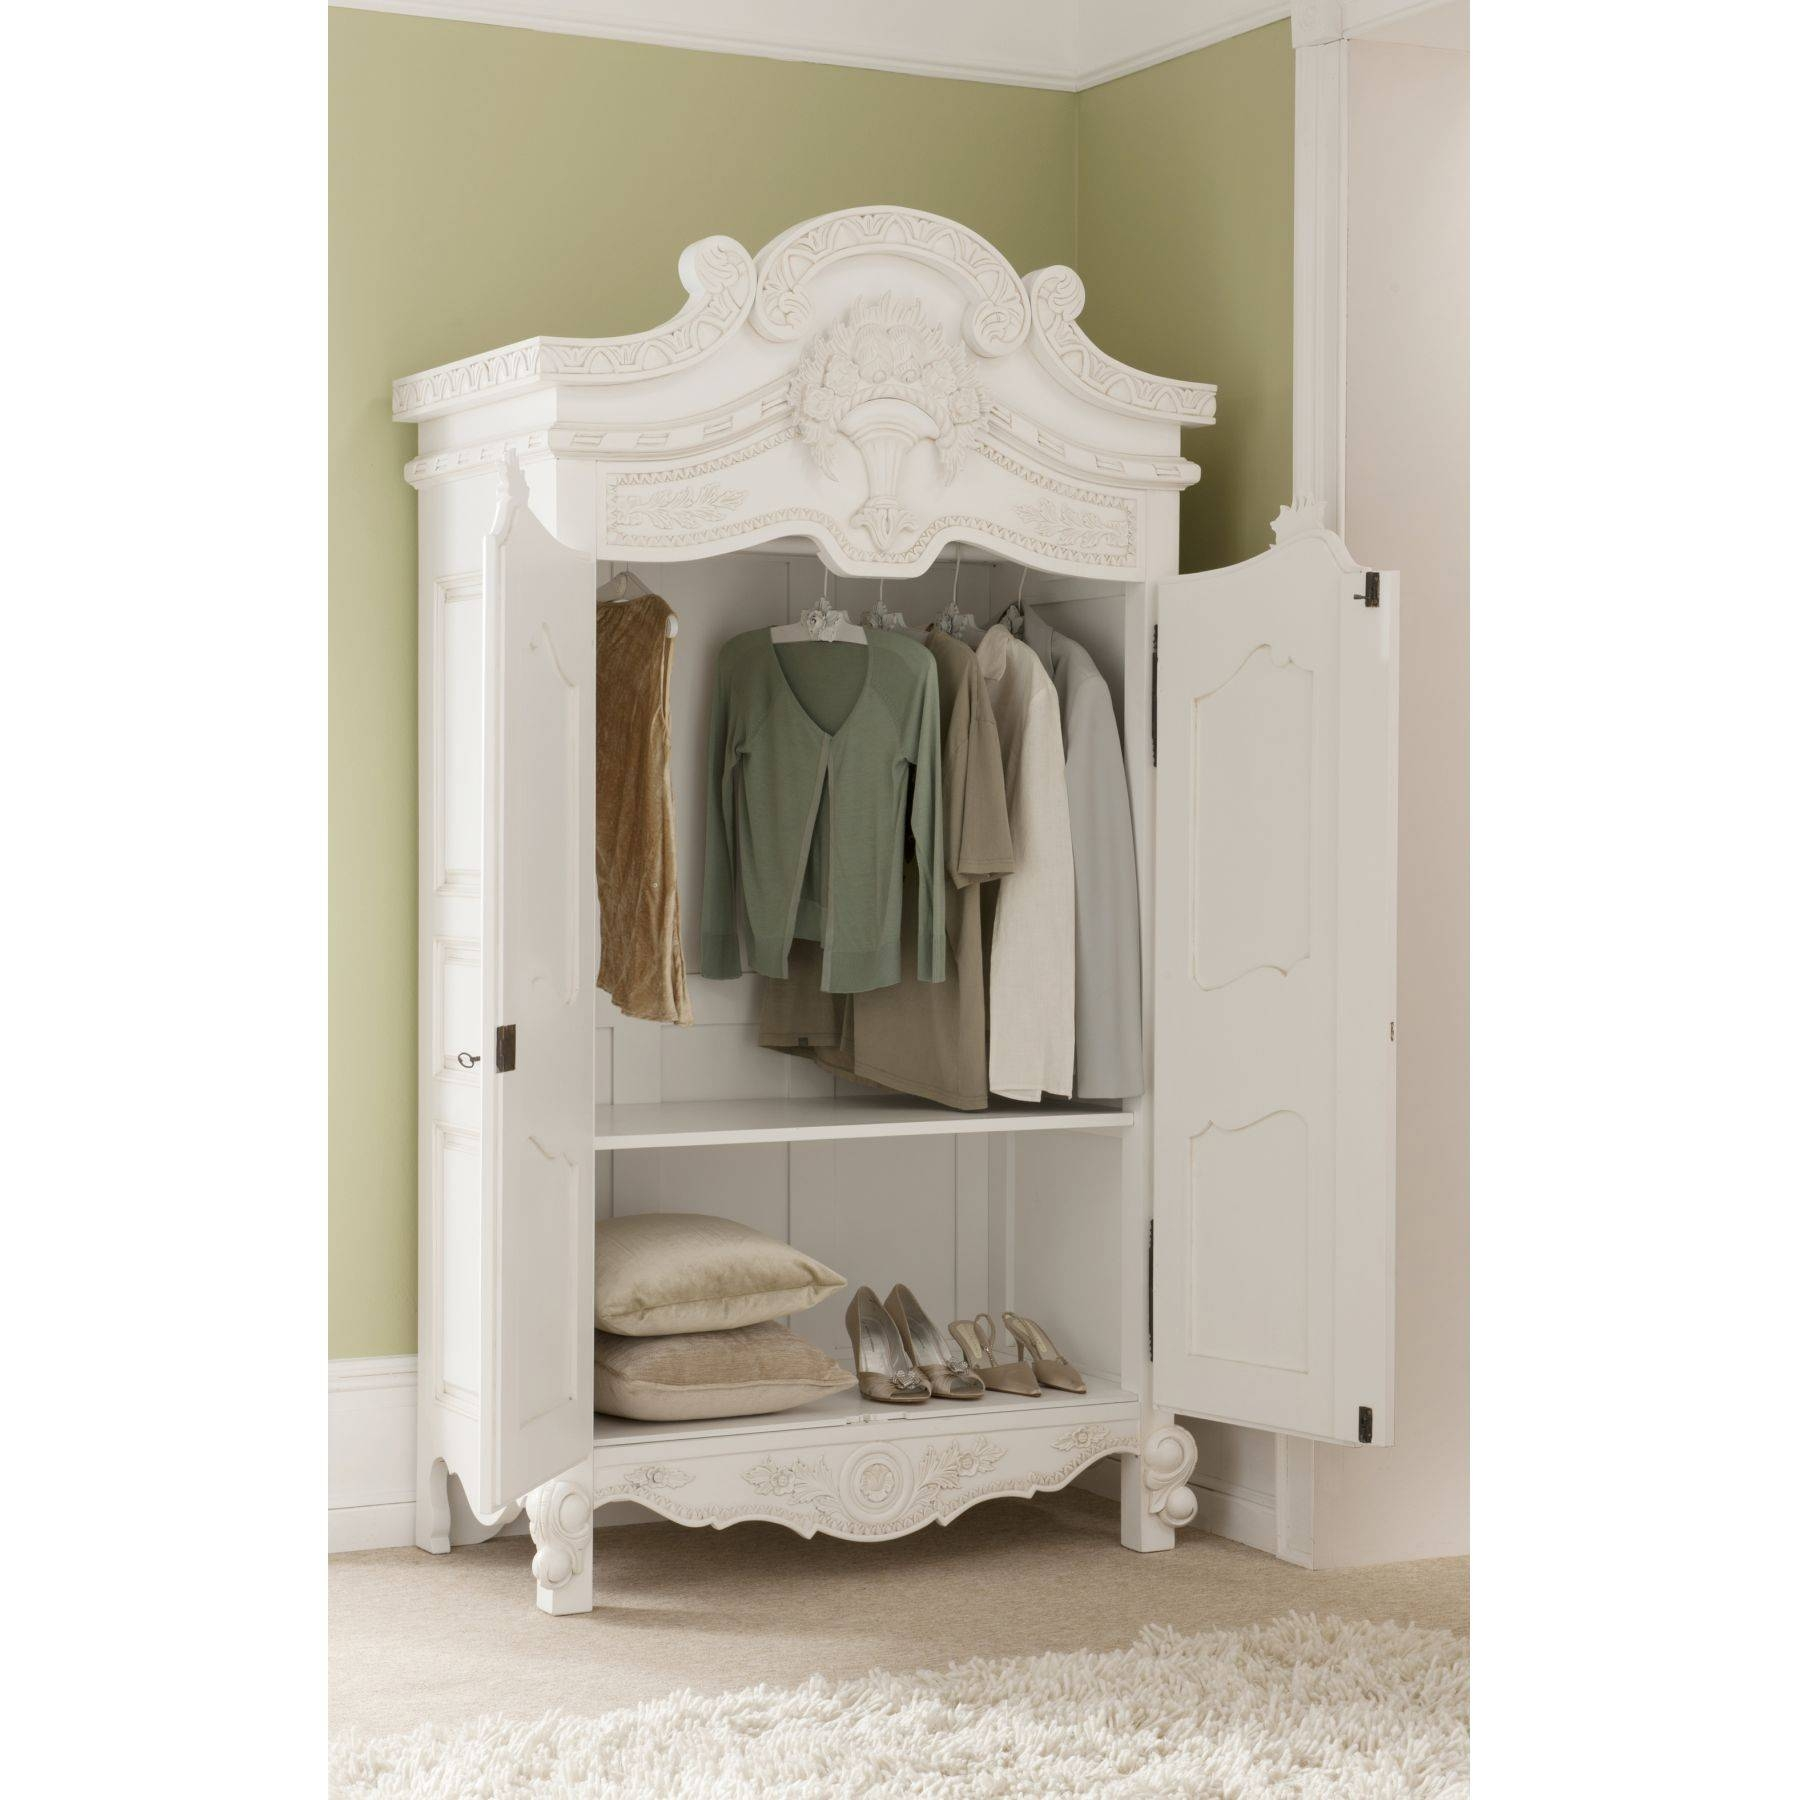 Rococo Antique French Wardrobe A Stunning Addition To Our Shabby in White French Wardrobes (Image 12 of 15)